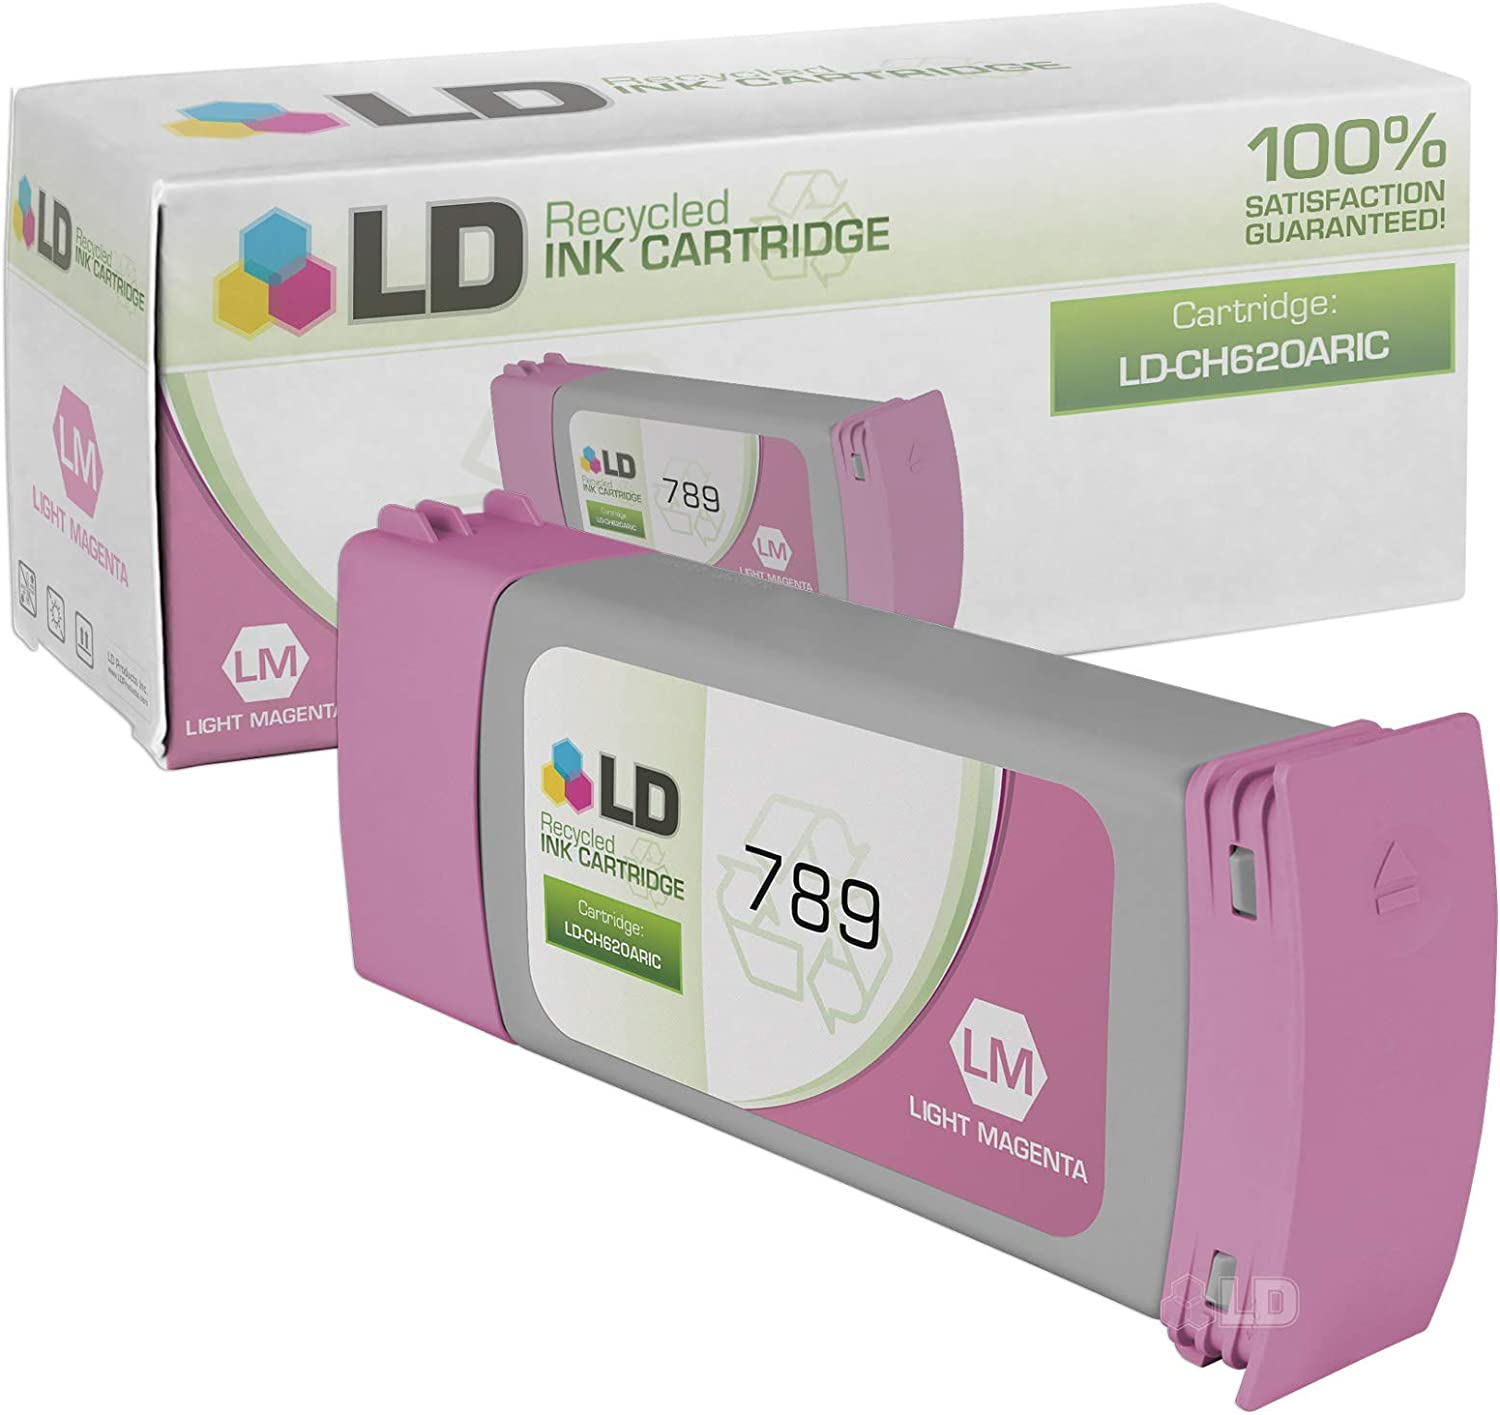 LD Remanufactured Ink Cartridge Replacement for HP 789 CH620A (Light Magenta)